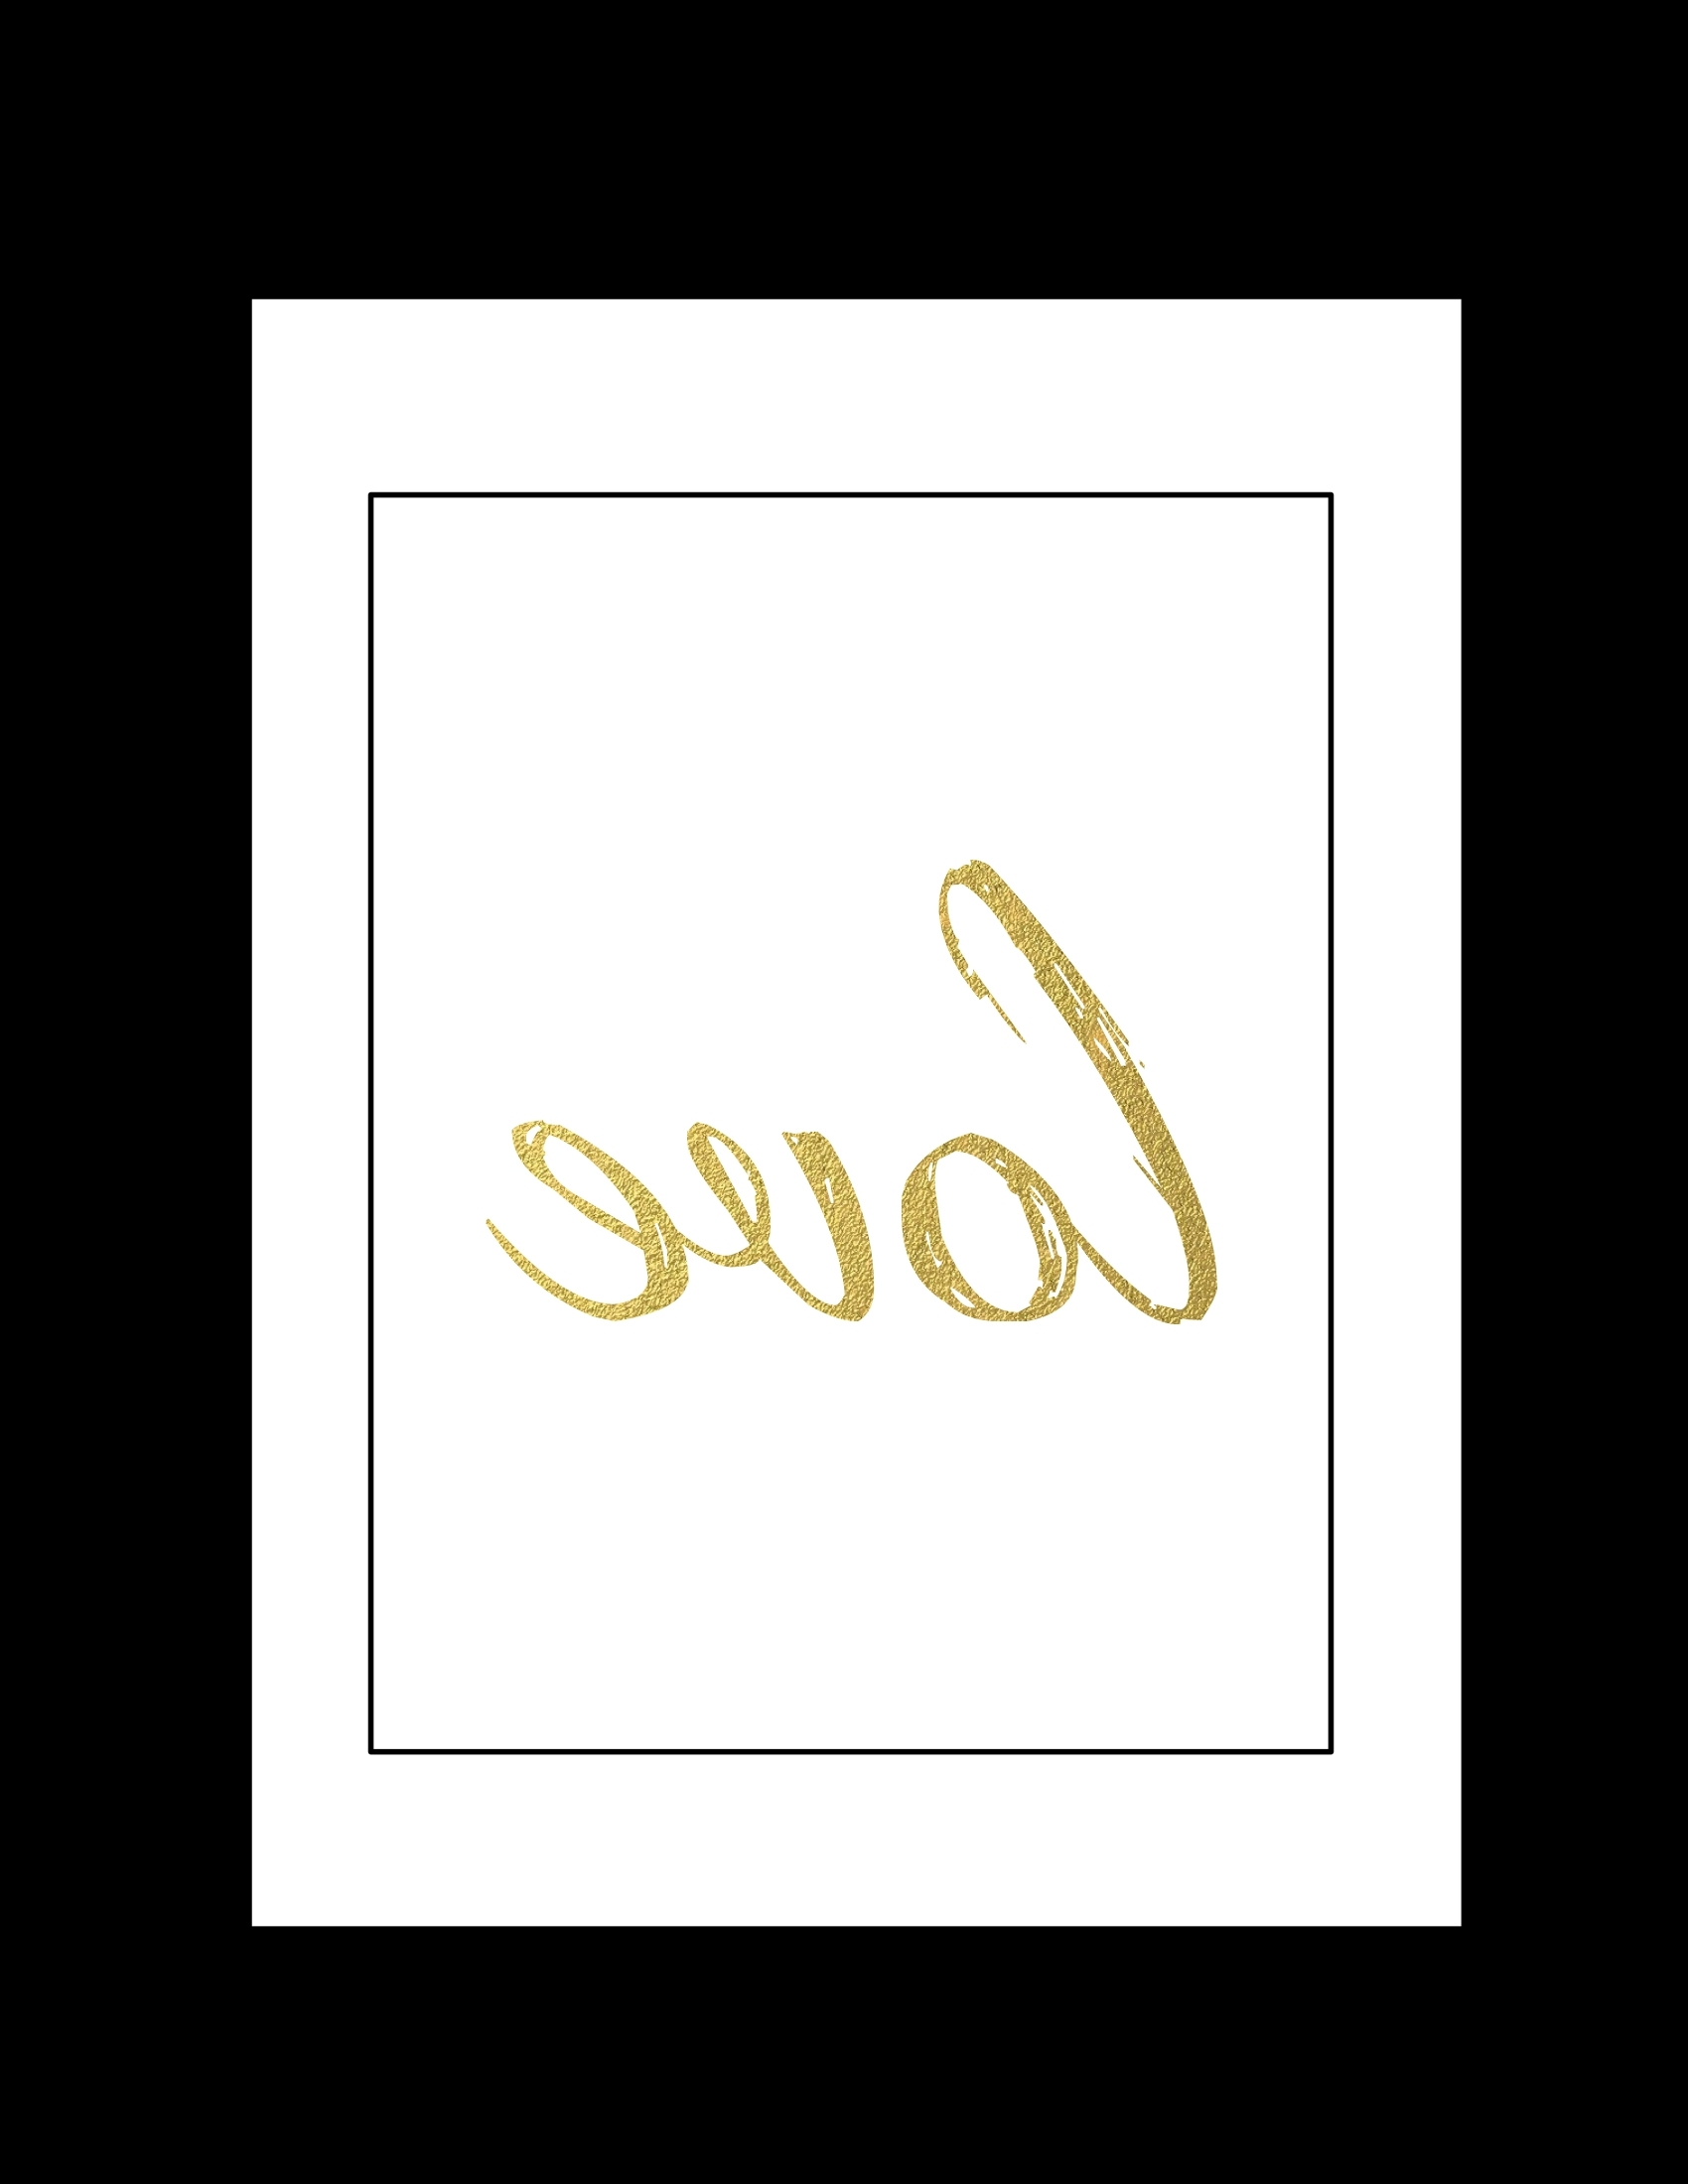 Free Printable Wall Art Decors In Famous Free Printable Wall Art: Black And Gold Love – Paper Trail Design (View 4 of 15)